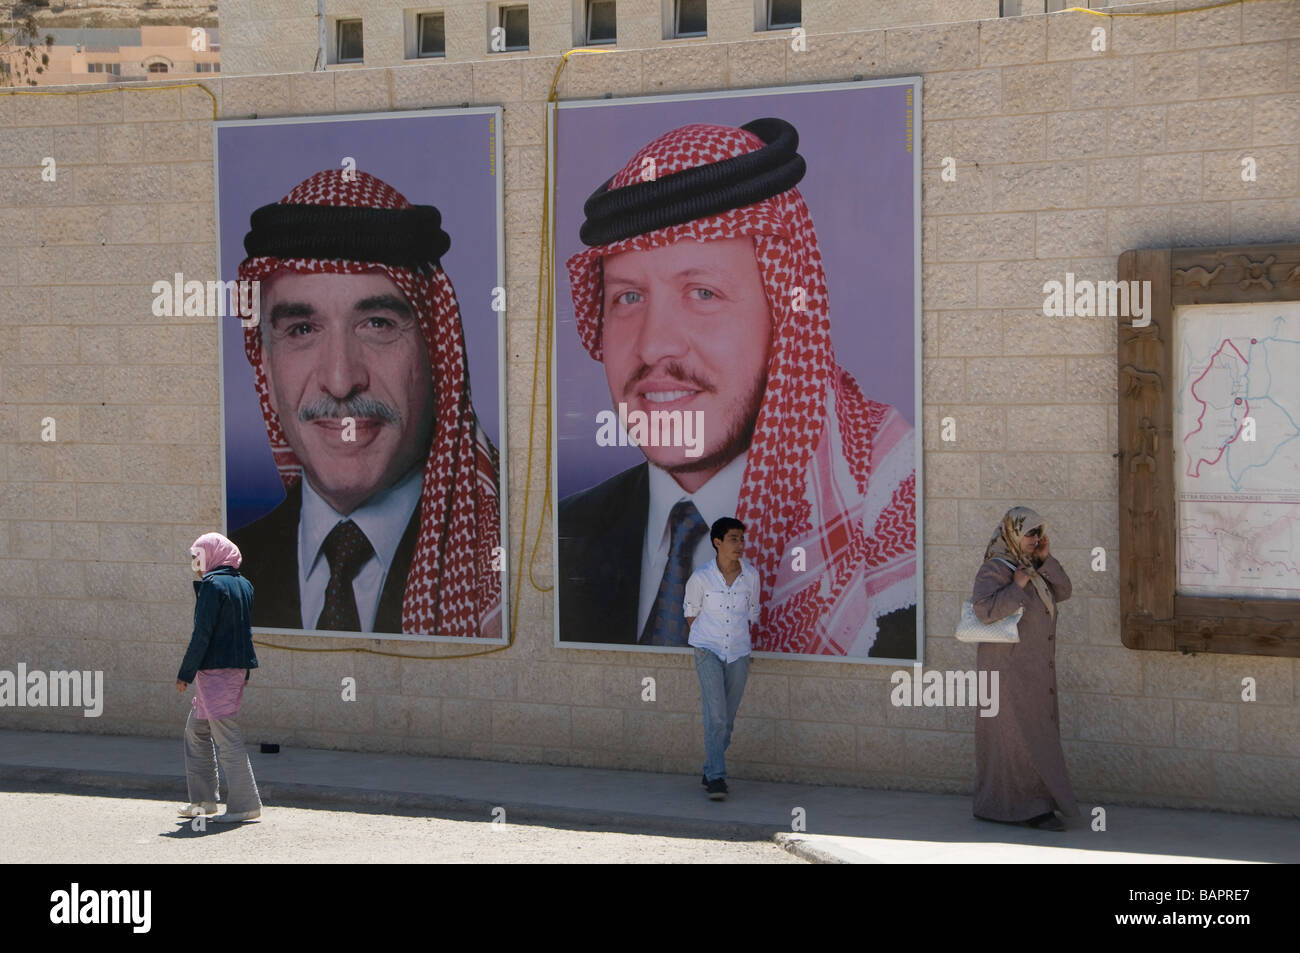 Posters featuring the Hashemites Jordan's Royal kings at the facade of the visitor center in Petra Jordan - Stock Image